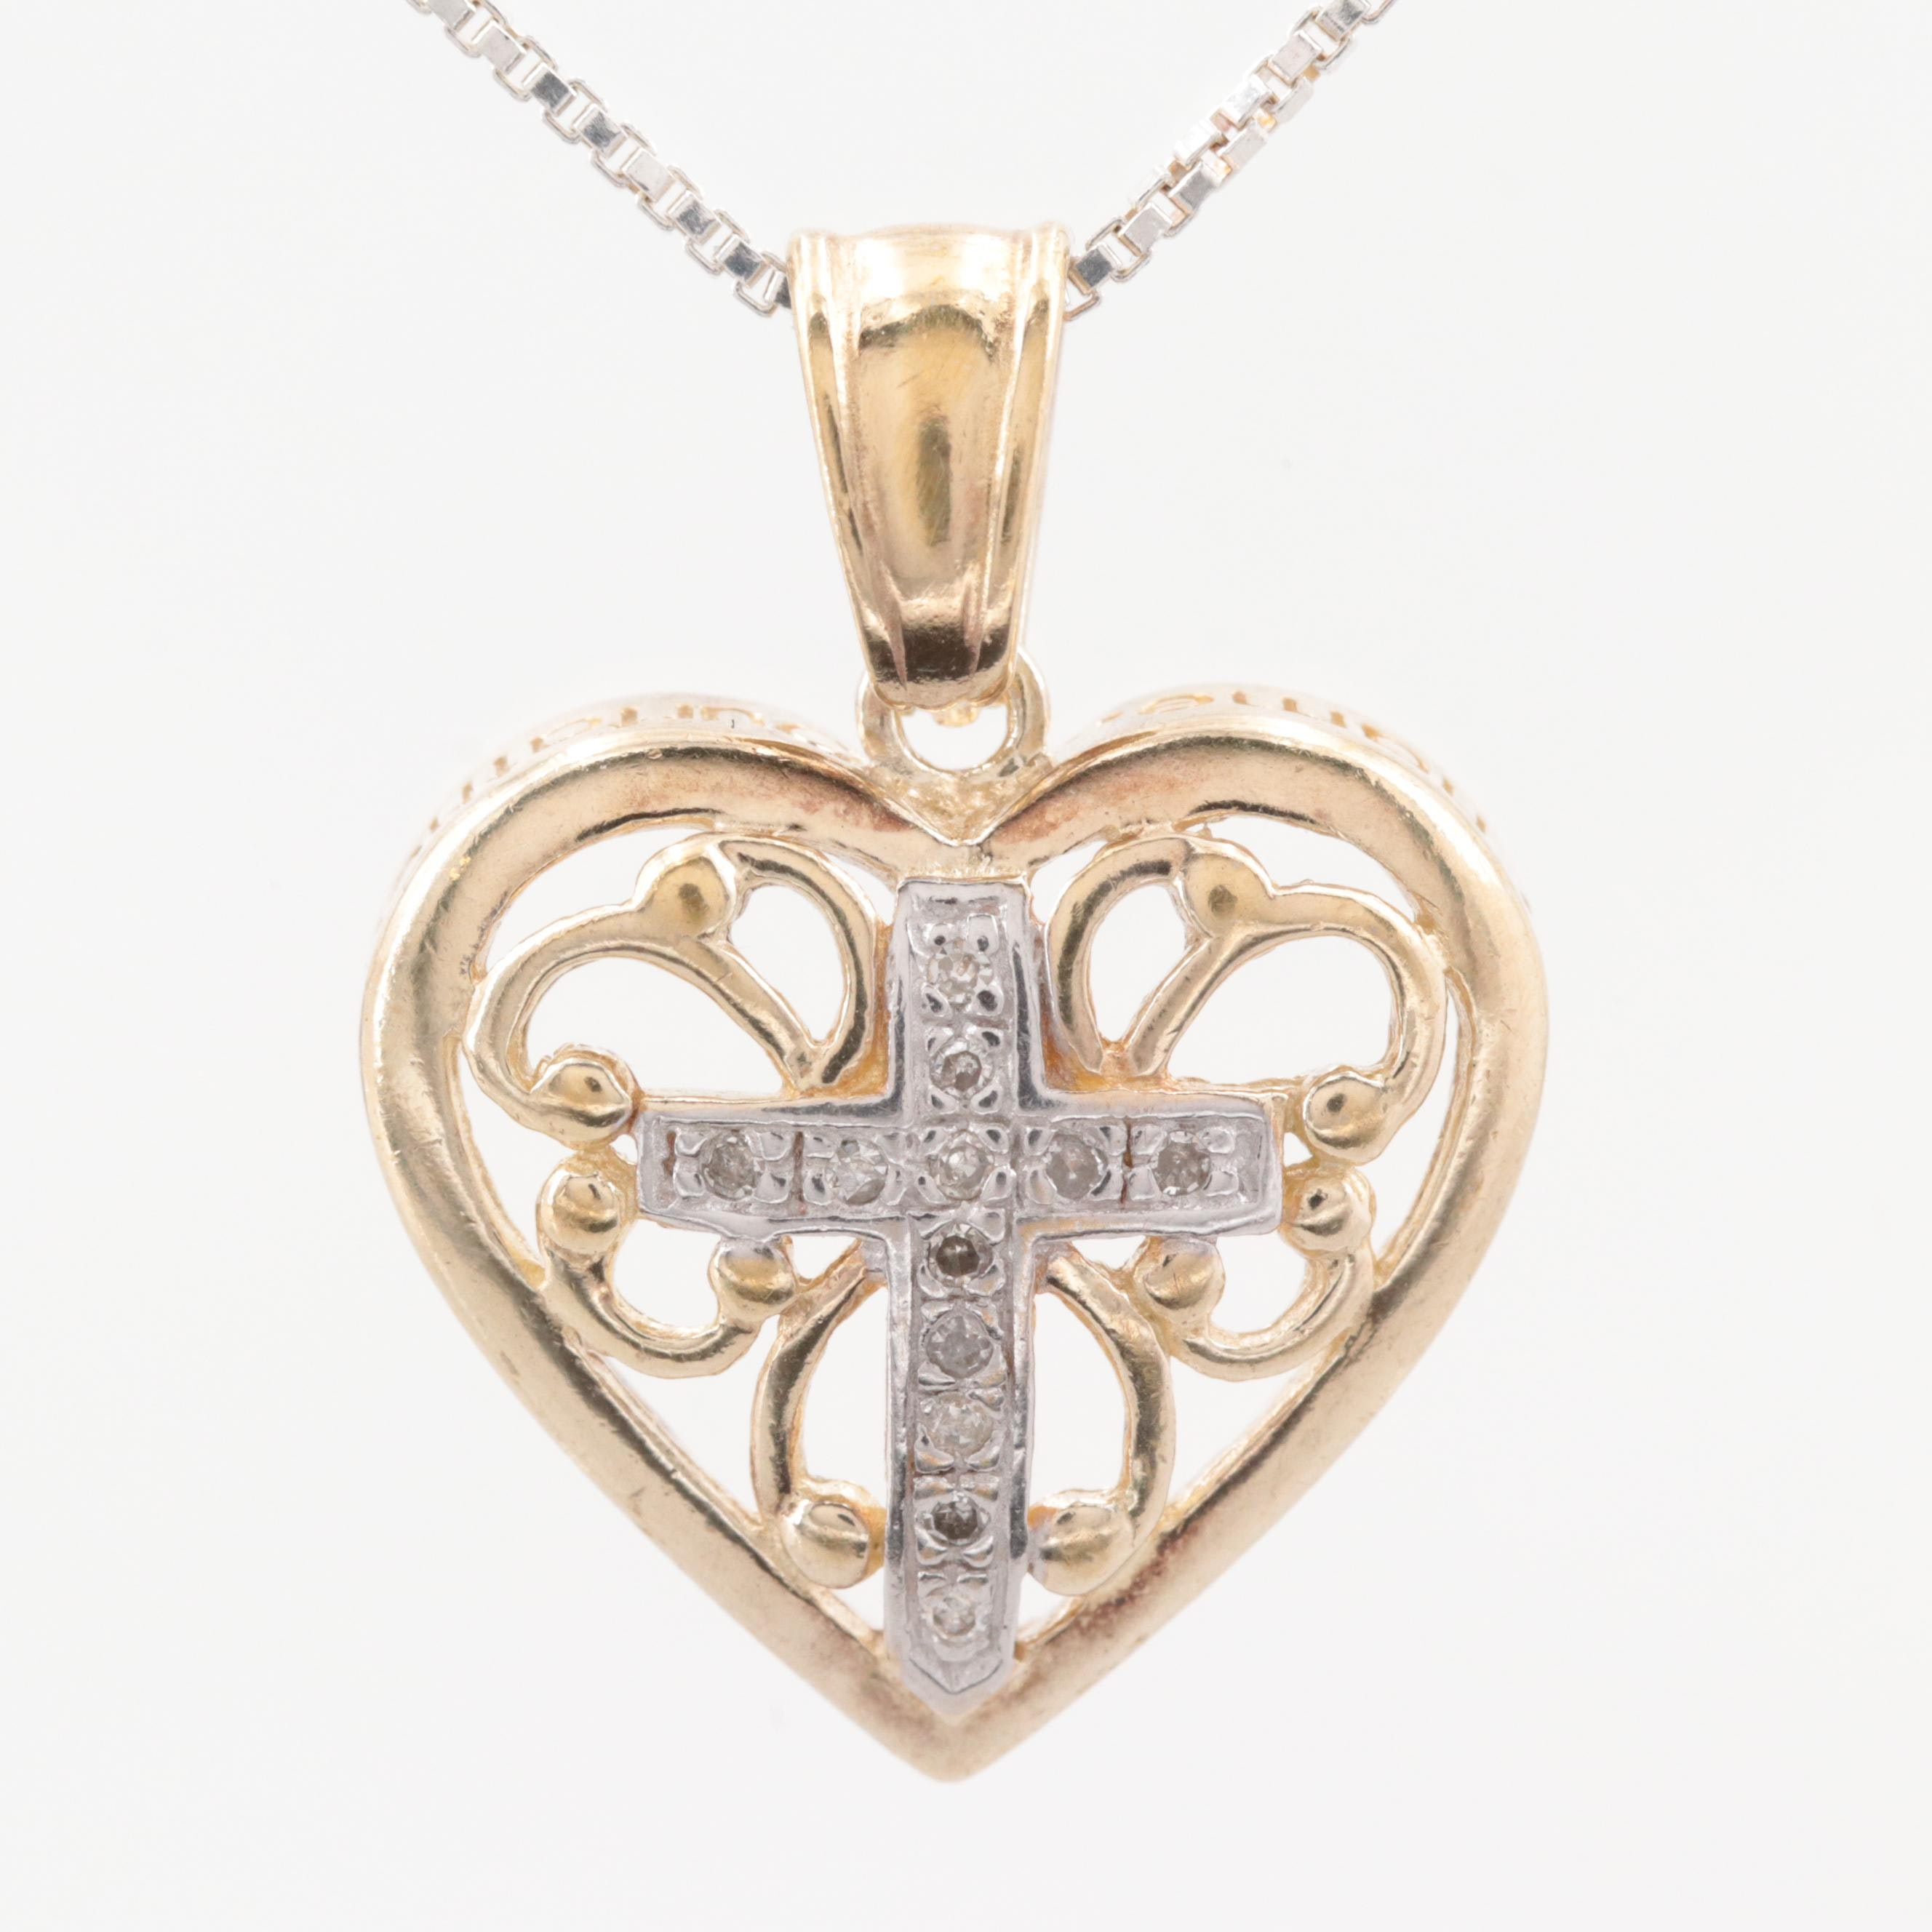 Gold Wash on Sterling Silver Diamond Heart Pendant with Sterling Silver Necklace